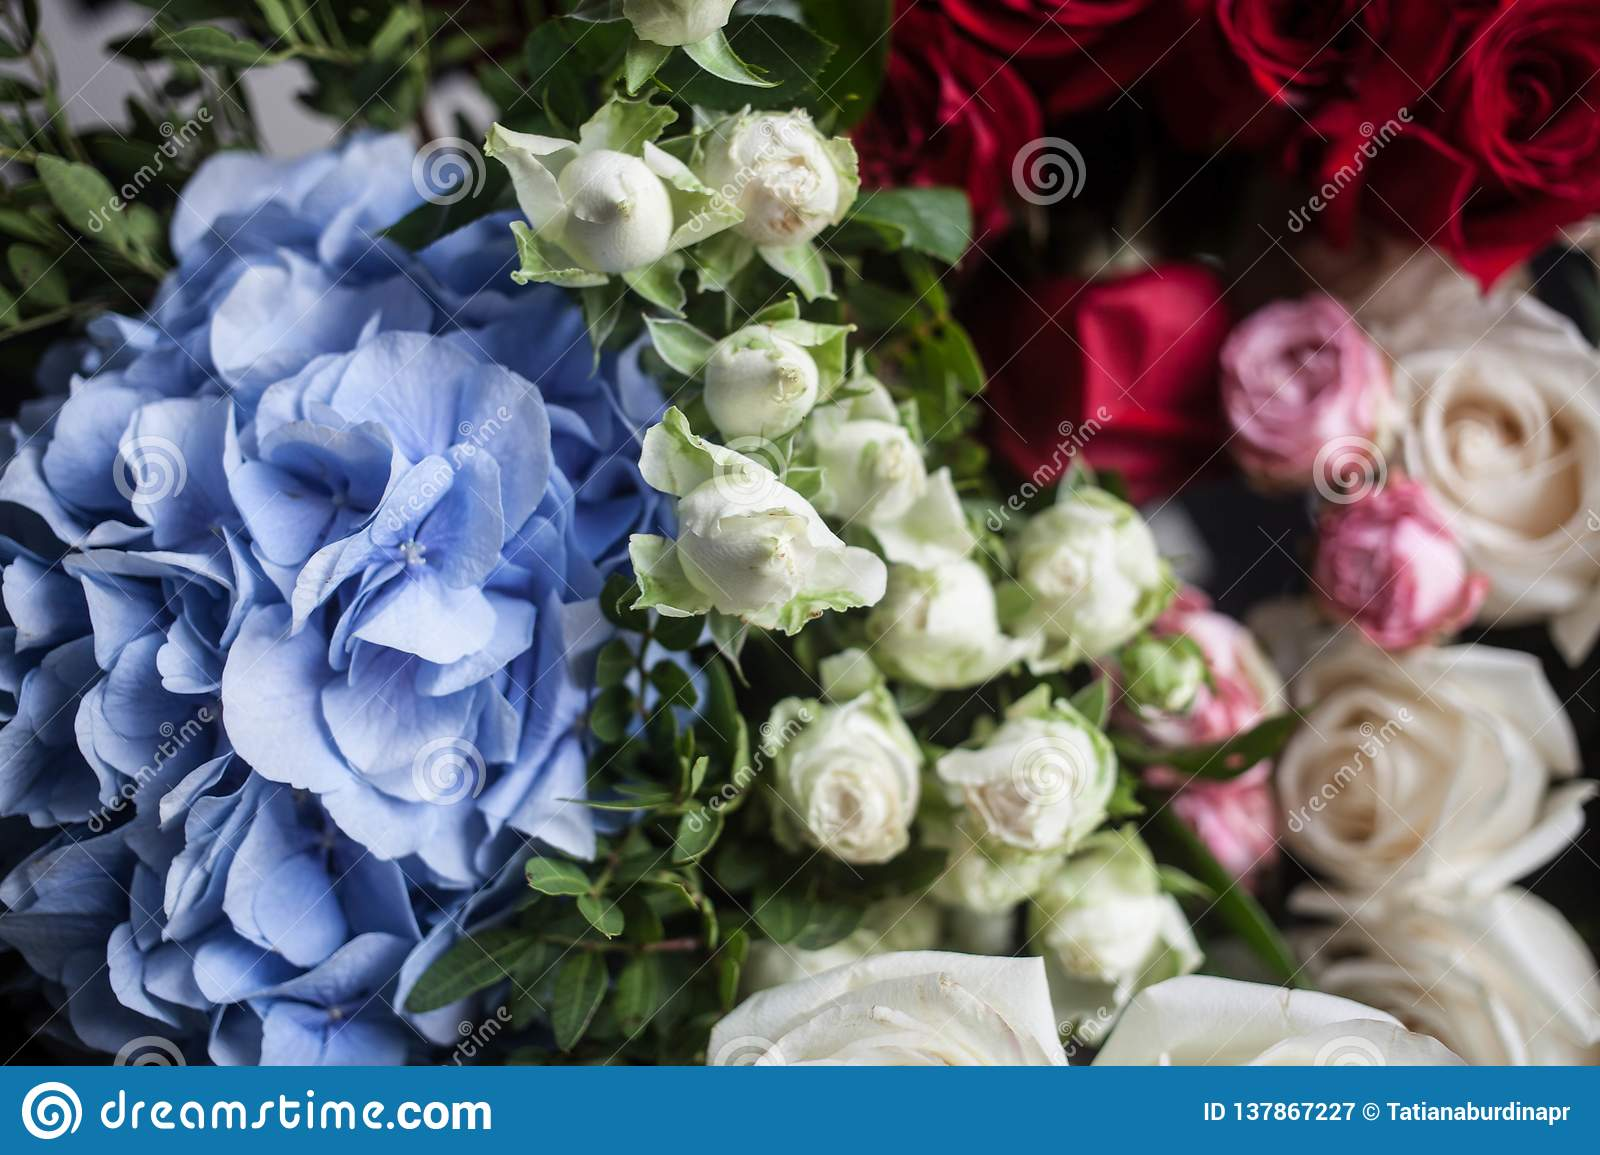 Light Blue Hydrangea And Red And White Roses The Bride S Bouquet Mother S Day And March 8 Stock Image Image Of Arrangement Beautiful 137867227